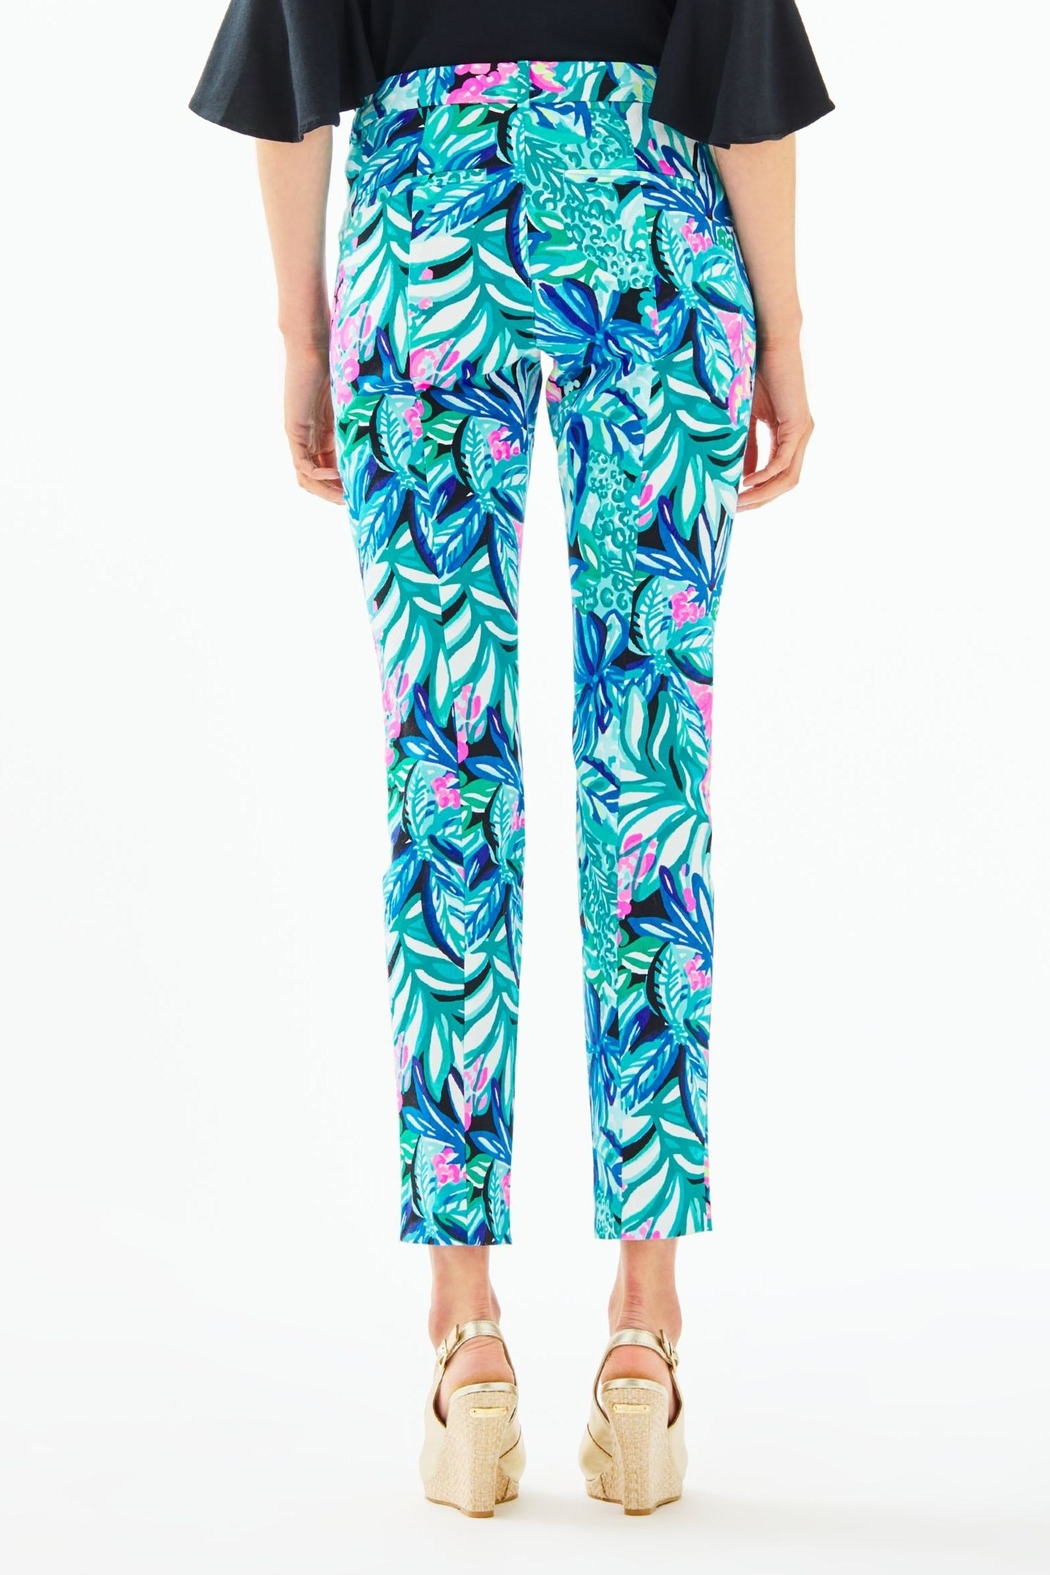 Lilly Pulitzer Kelly Skinny-Ankle Pant - Front Full Image